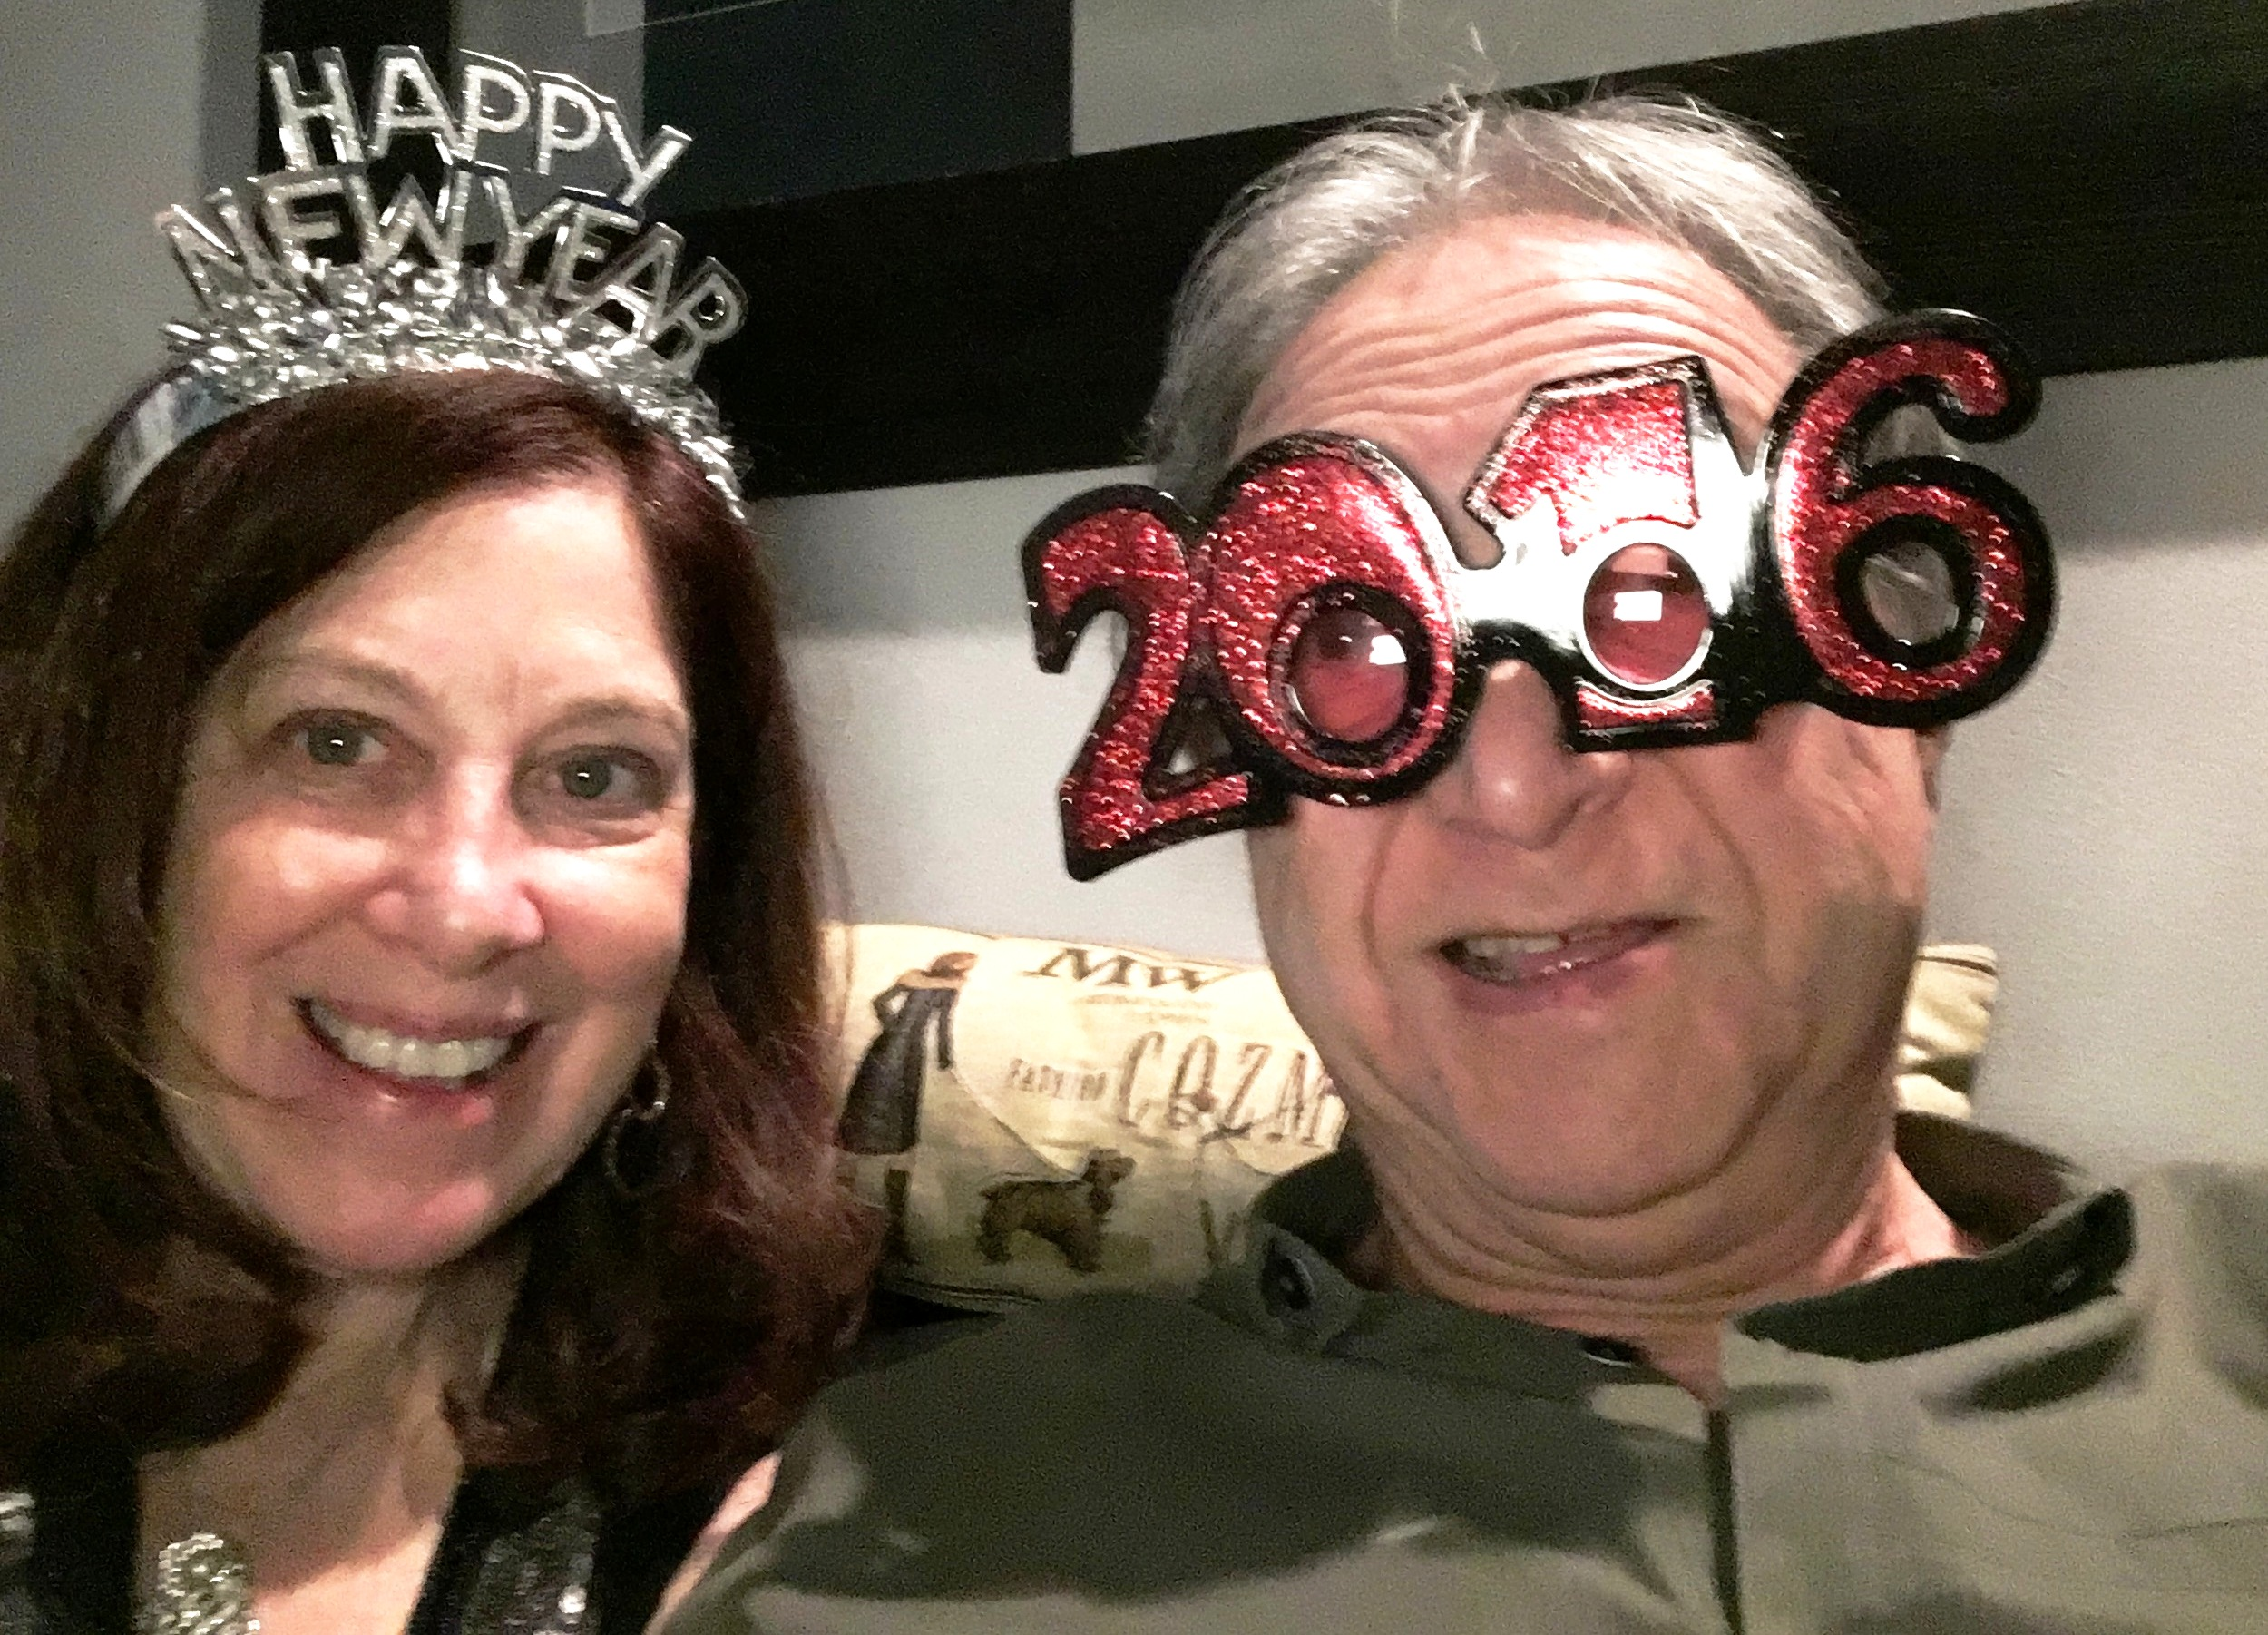 Harlan and Pattie on New Year's Eve 2015.JPG